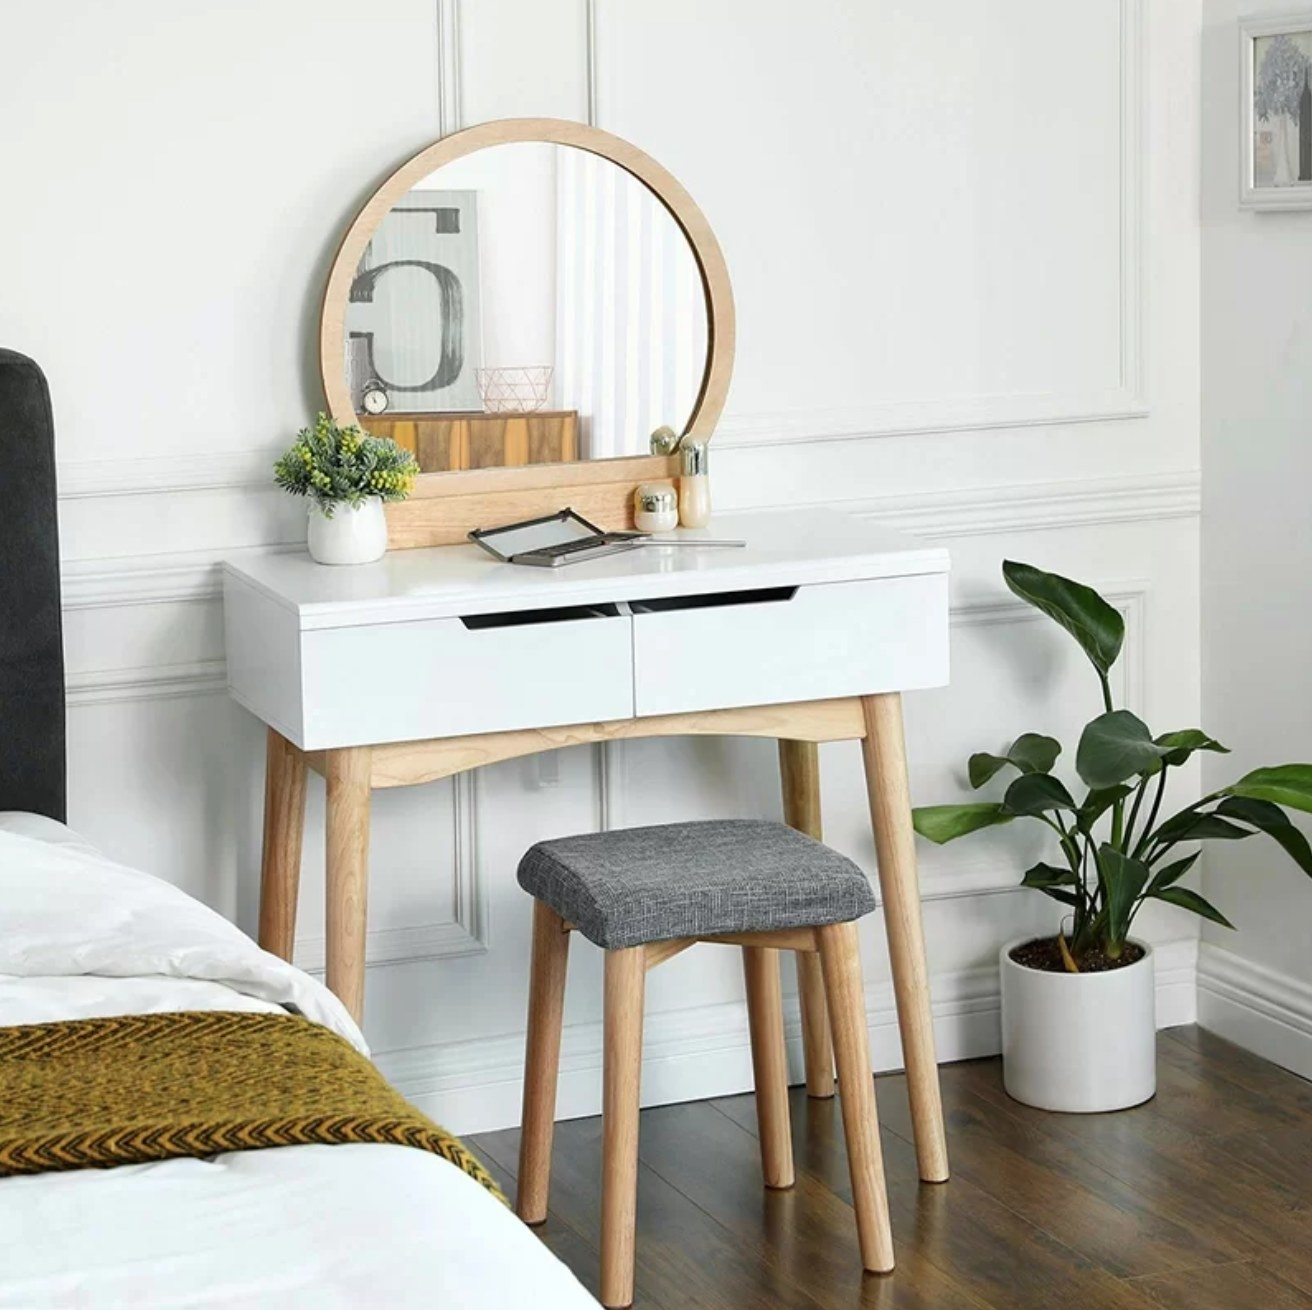 The vanity set natural/white in a bedroom next to a bed and plant